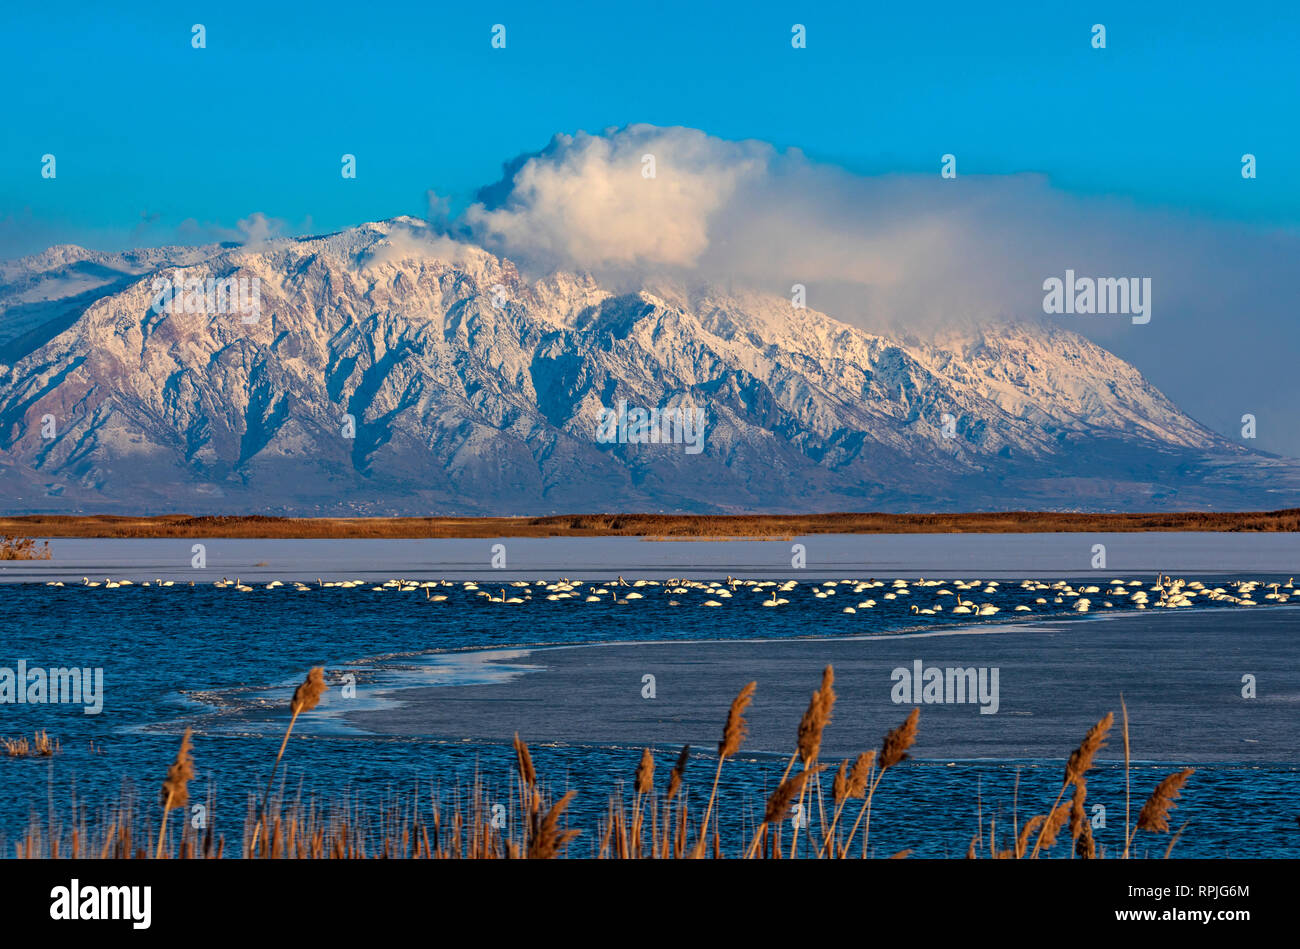 In this shot Tundra Swans (Cygnus columbianus) rest and feed on a patch of open water at Bear River Migratory Bird Refuge in northern Utah, USA. - Stock Image